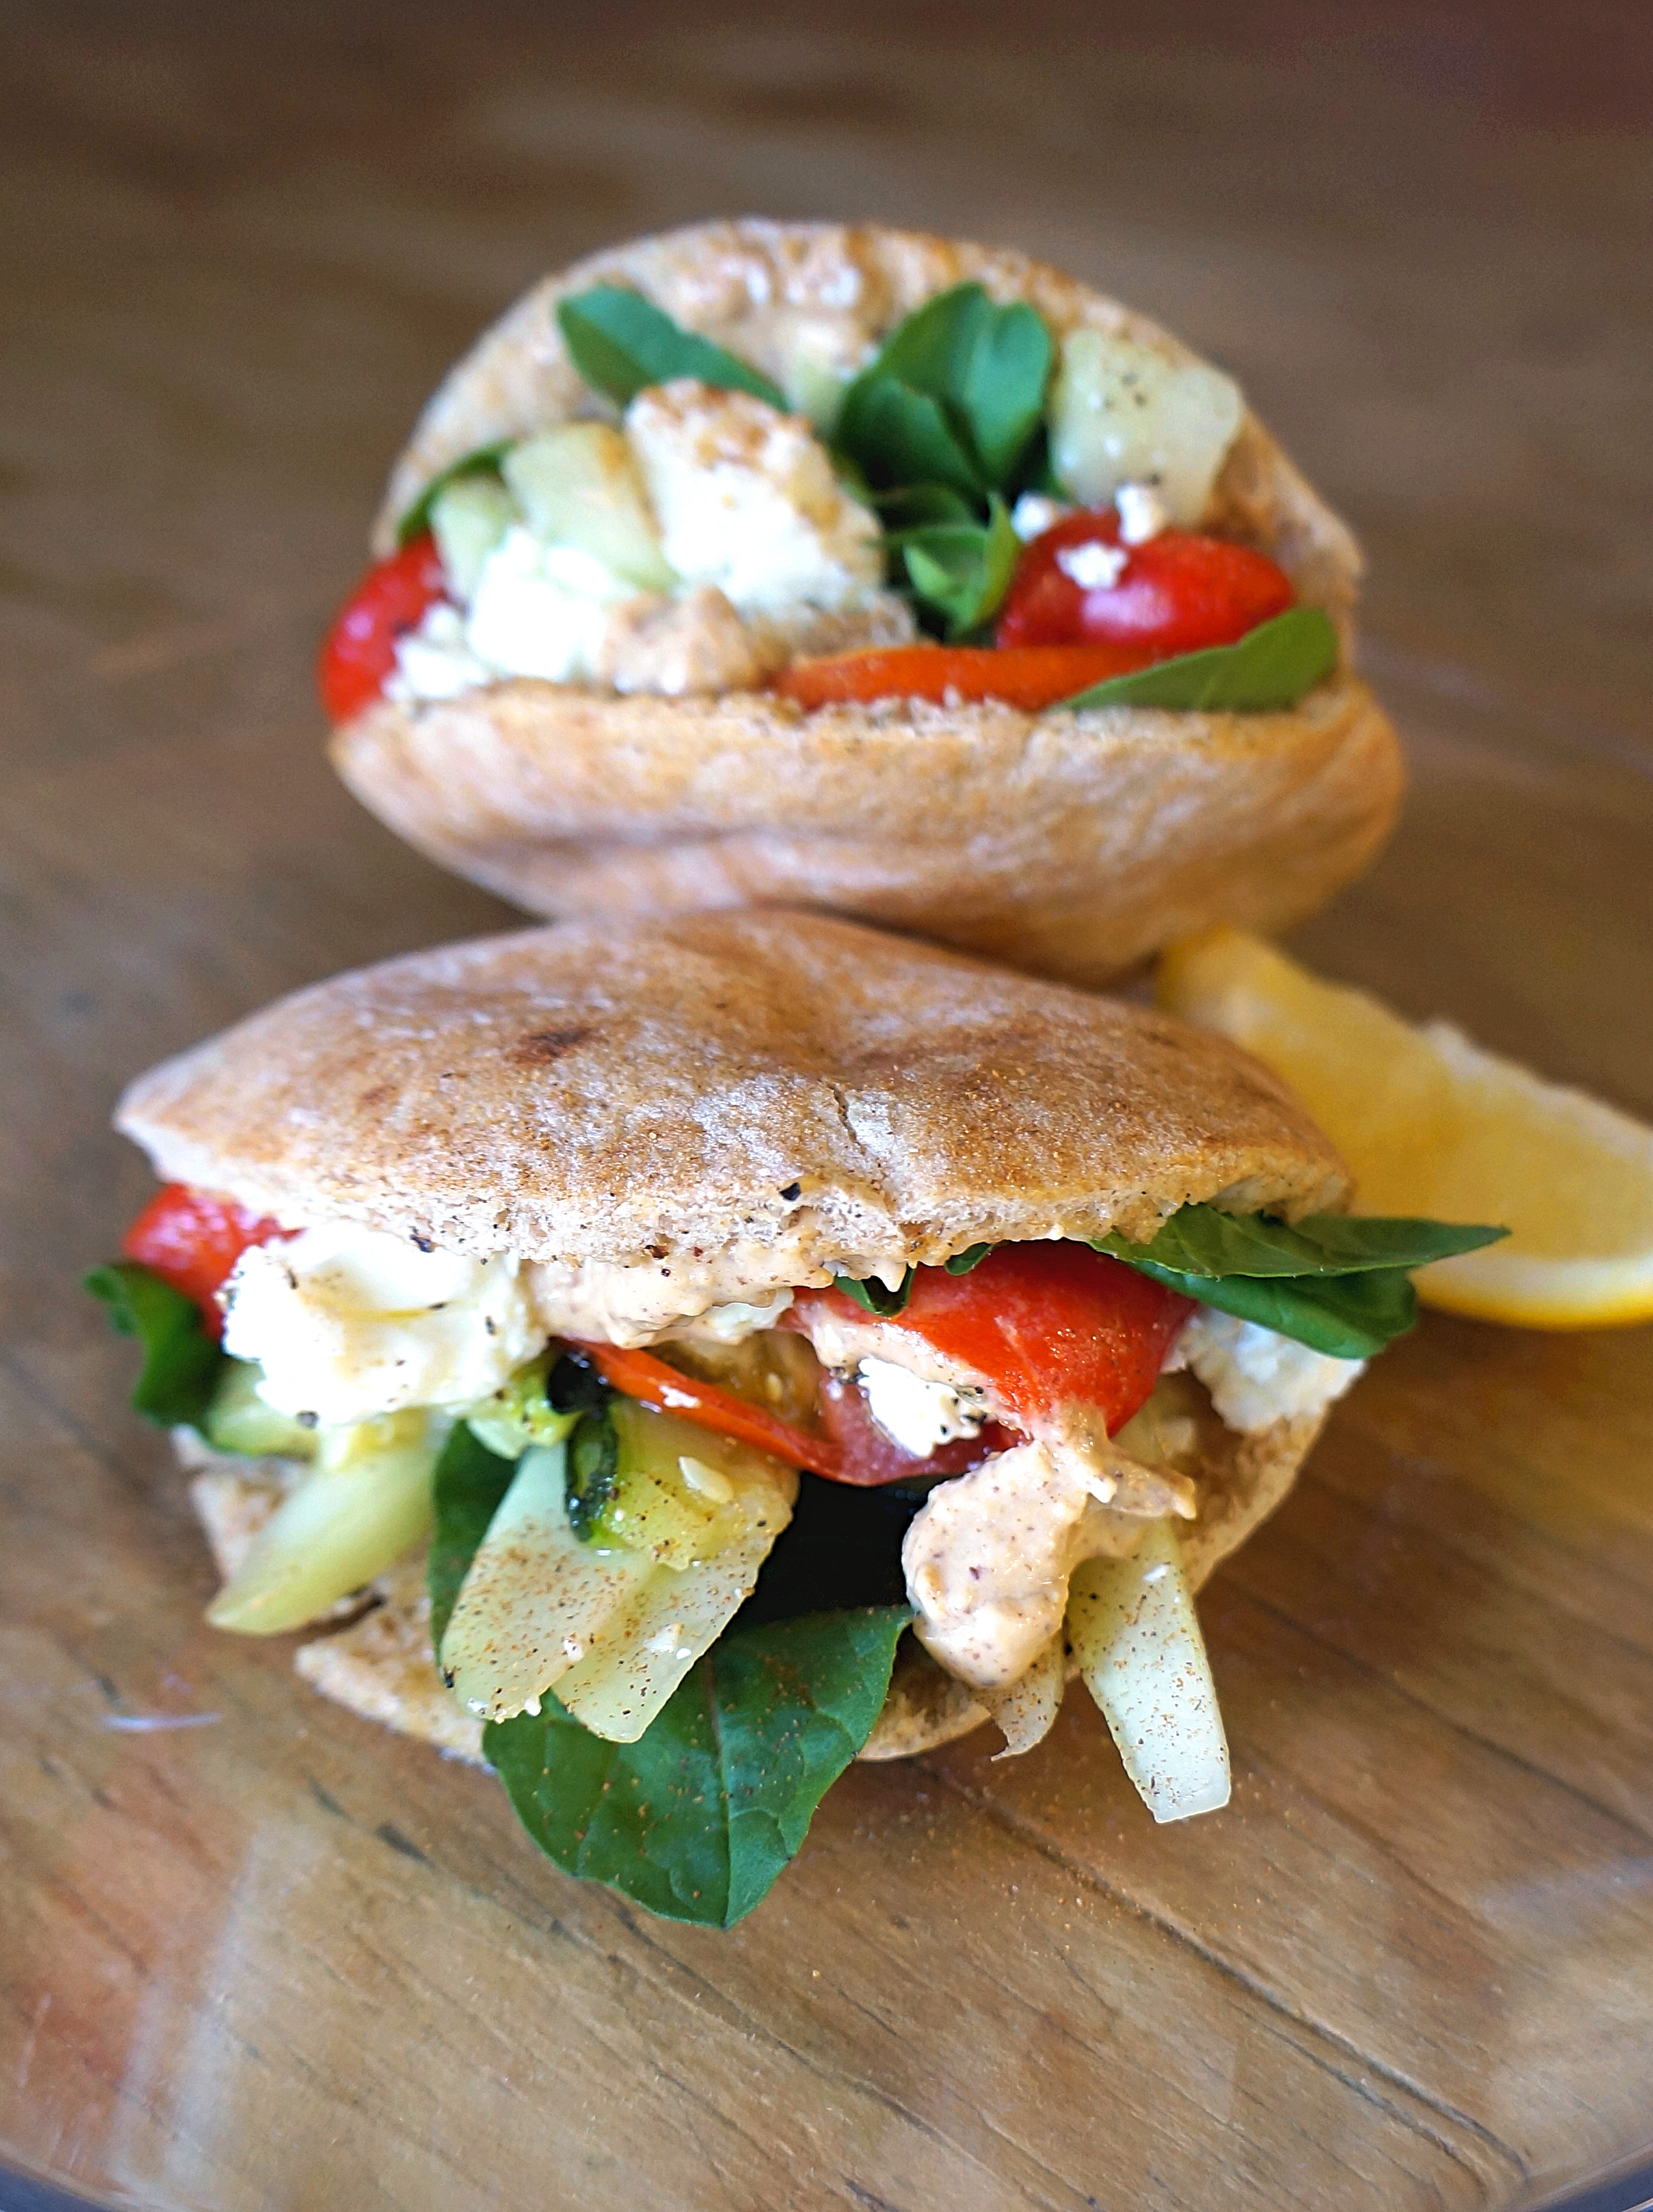 Roasted Vegetable, Almond Butter Hummus and Feta Pita